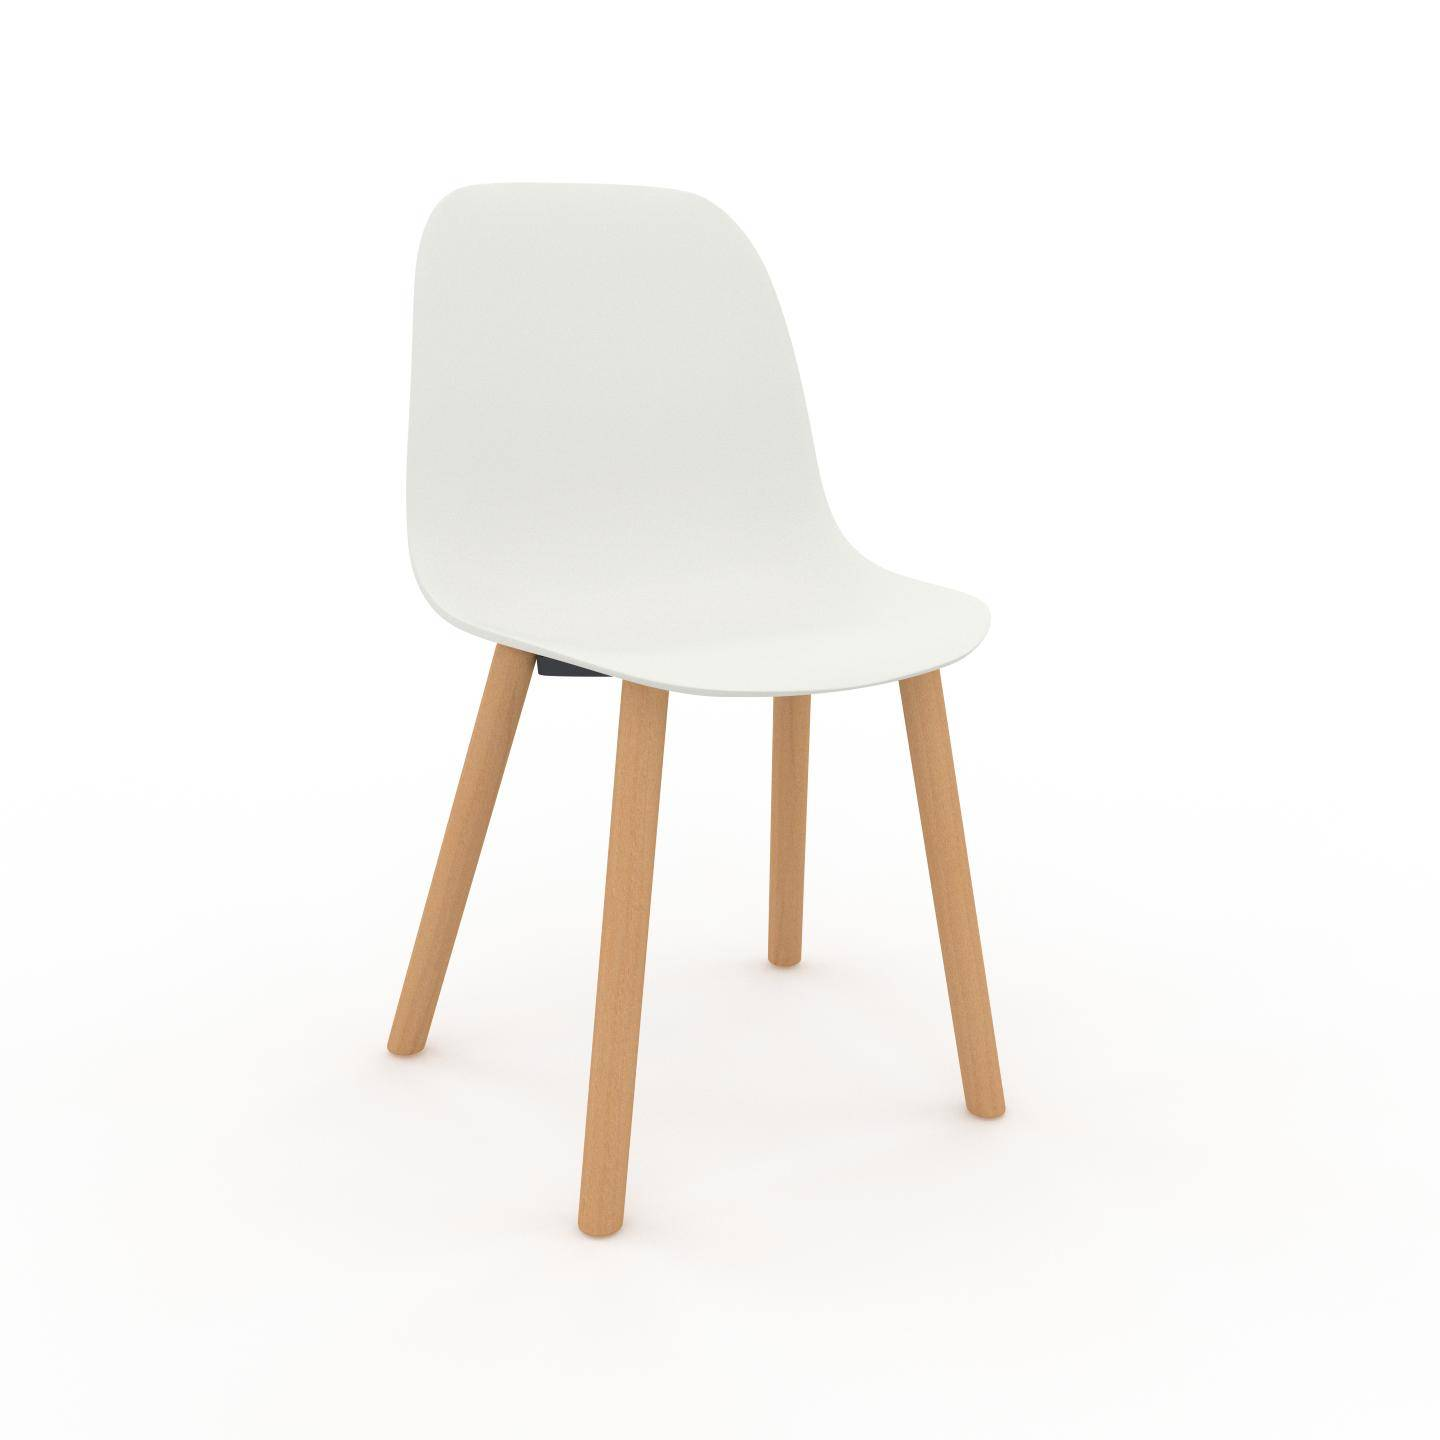 MYCS Chaise en bois blanc de 49 x 82 x 43 cm au design unique, configurable